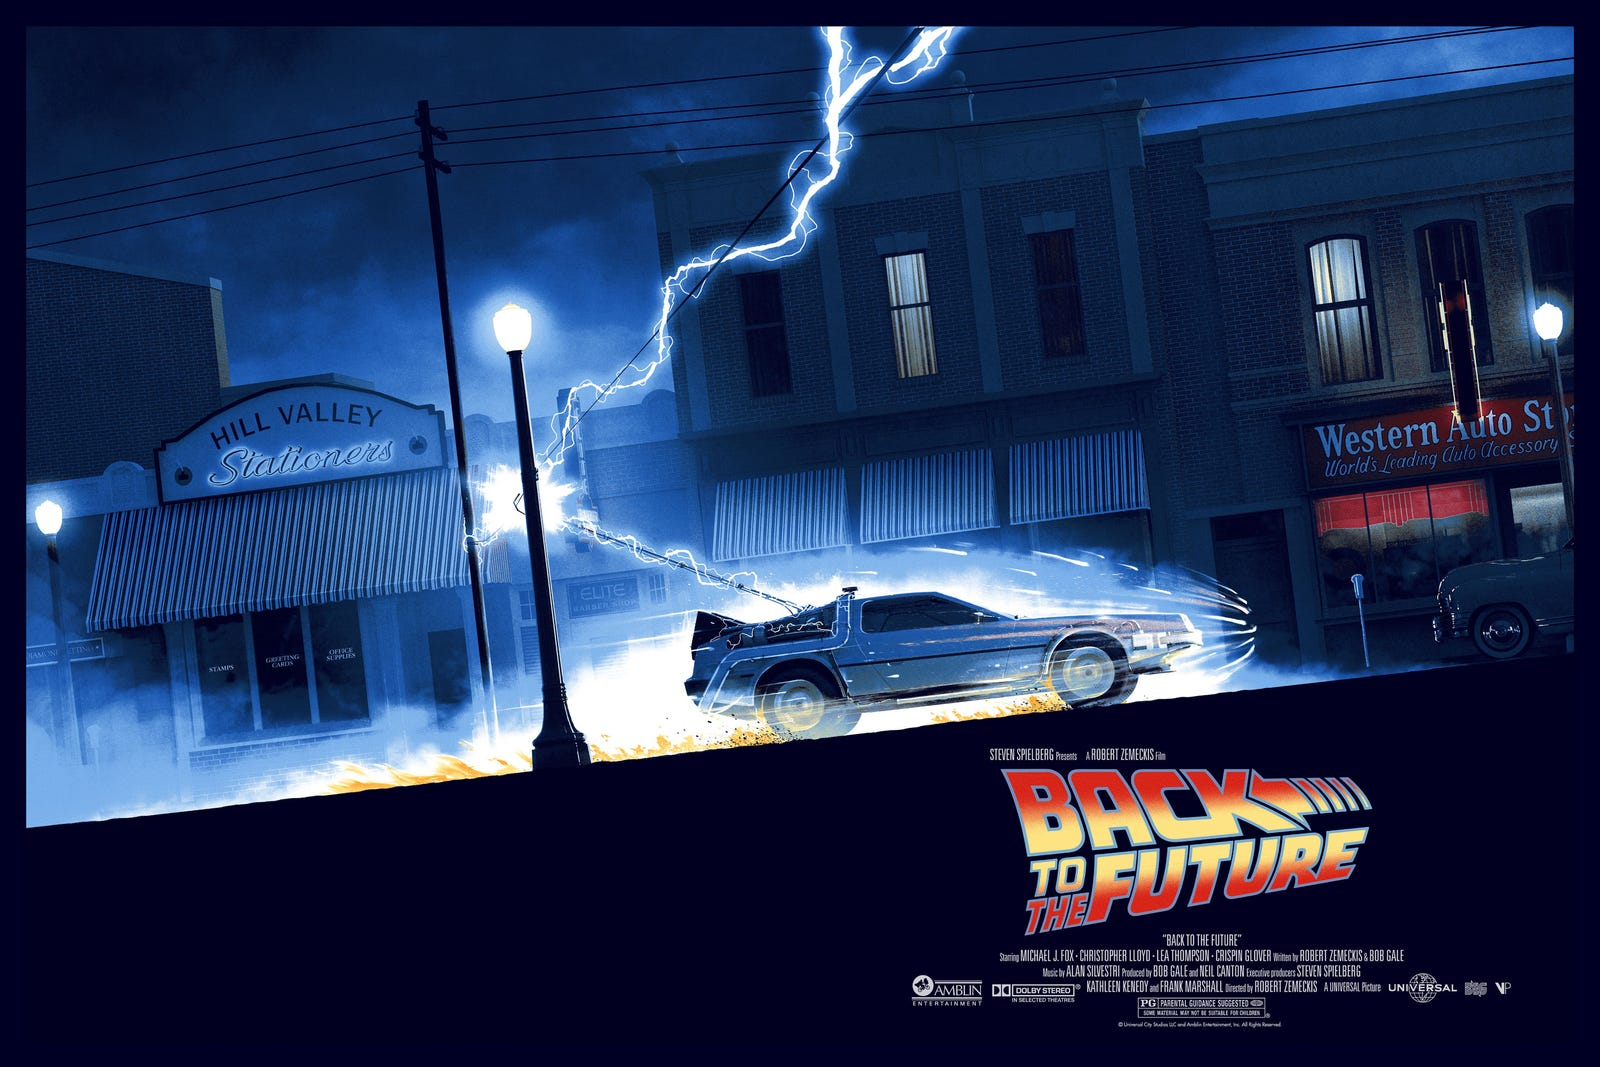 Back to the Future by Matt Ferguson. 36 x 24 inches in an edition of 175. Costs $50. Also available in a variant.